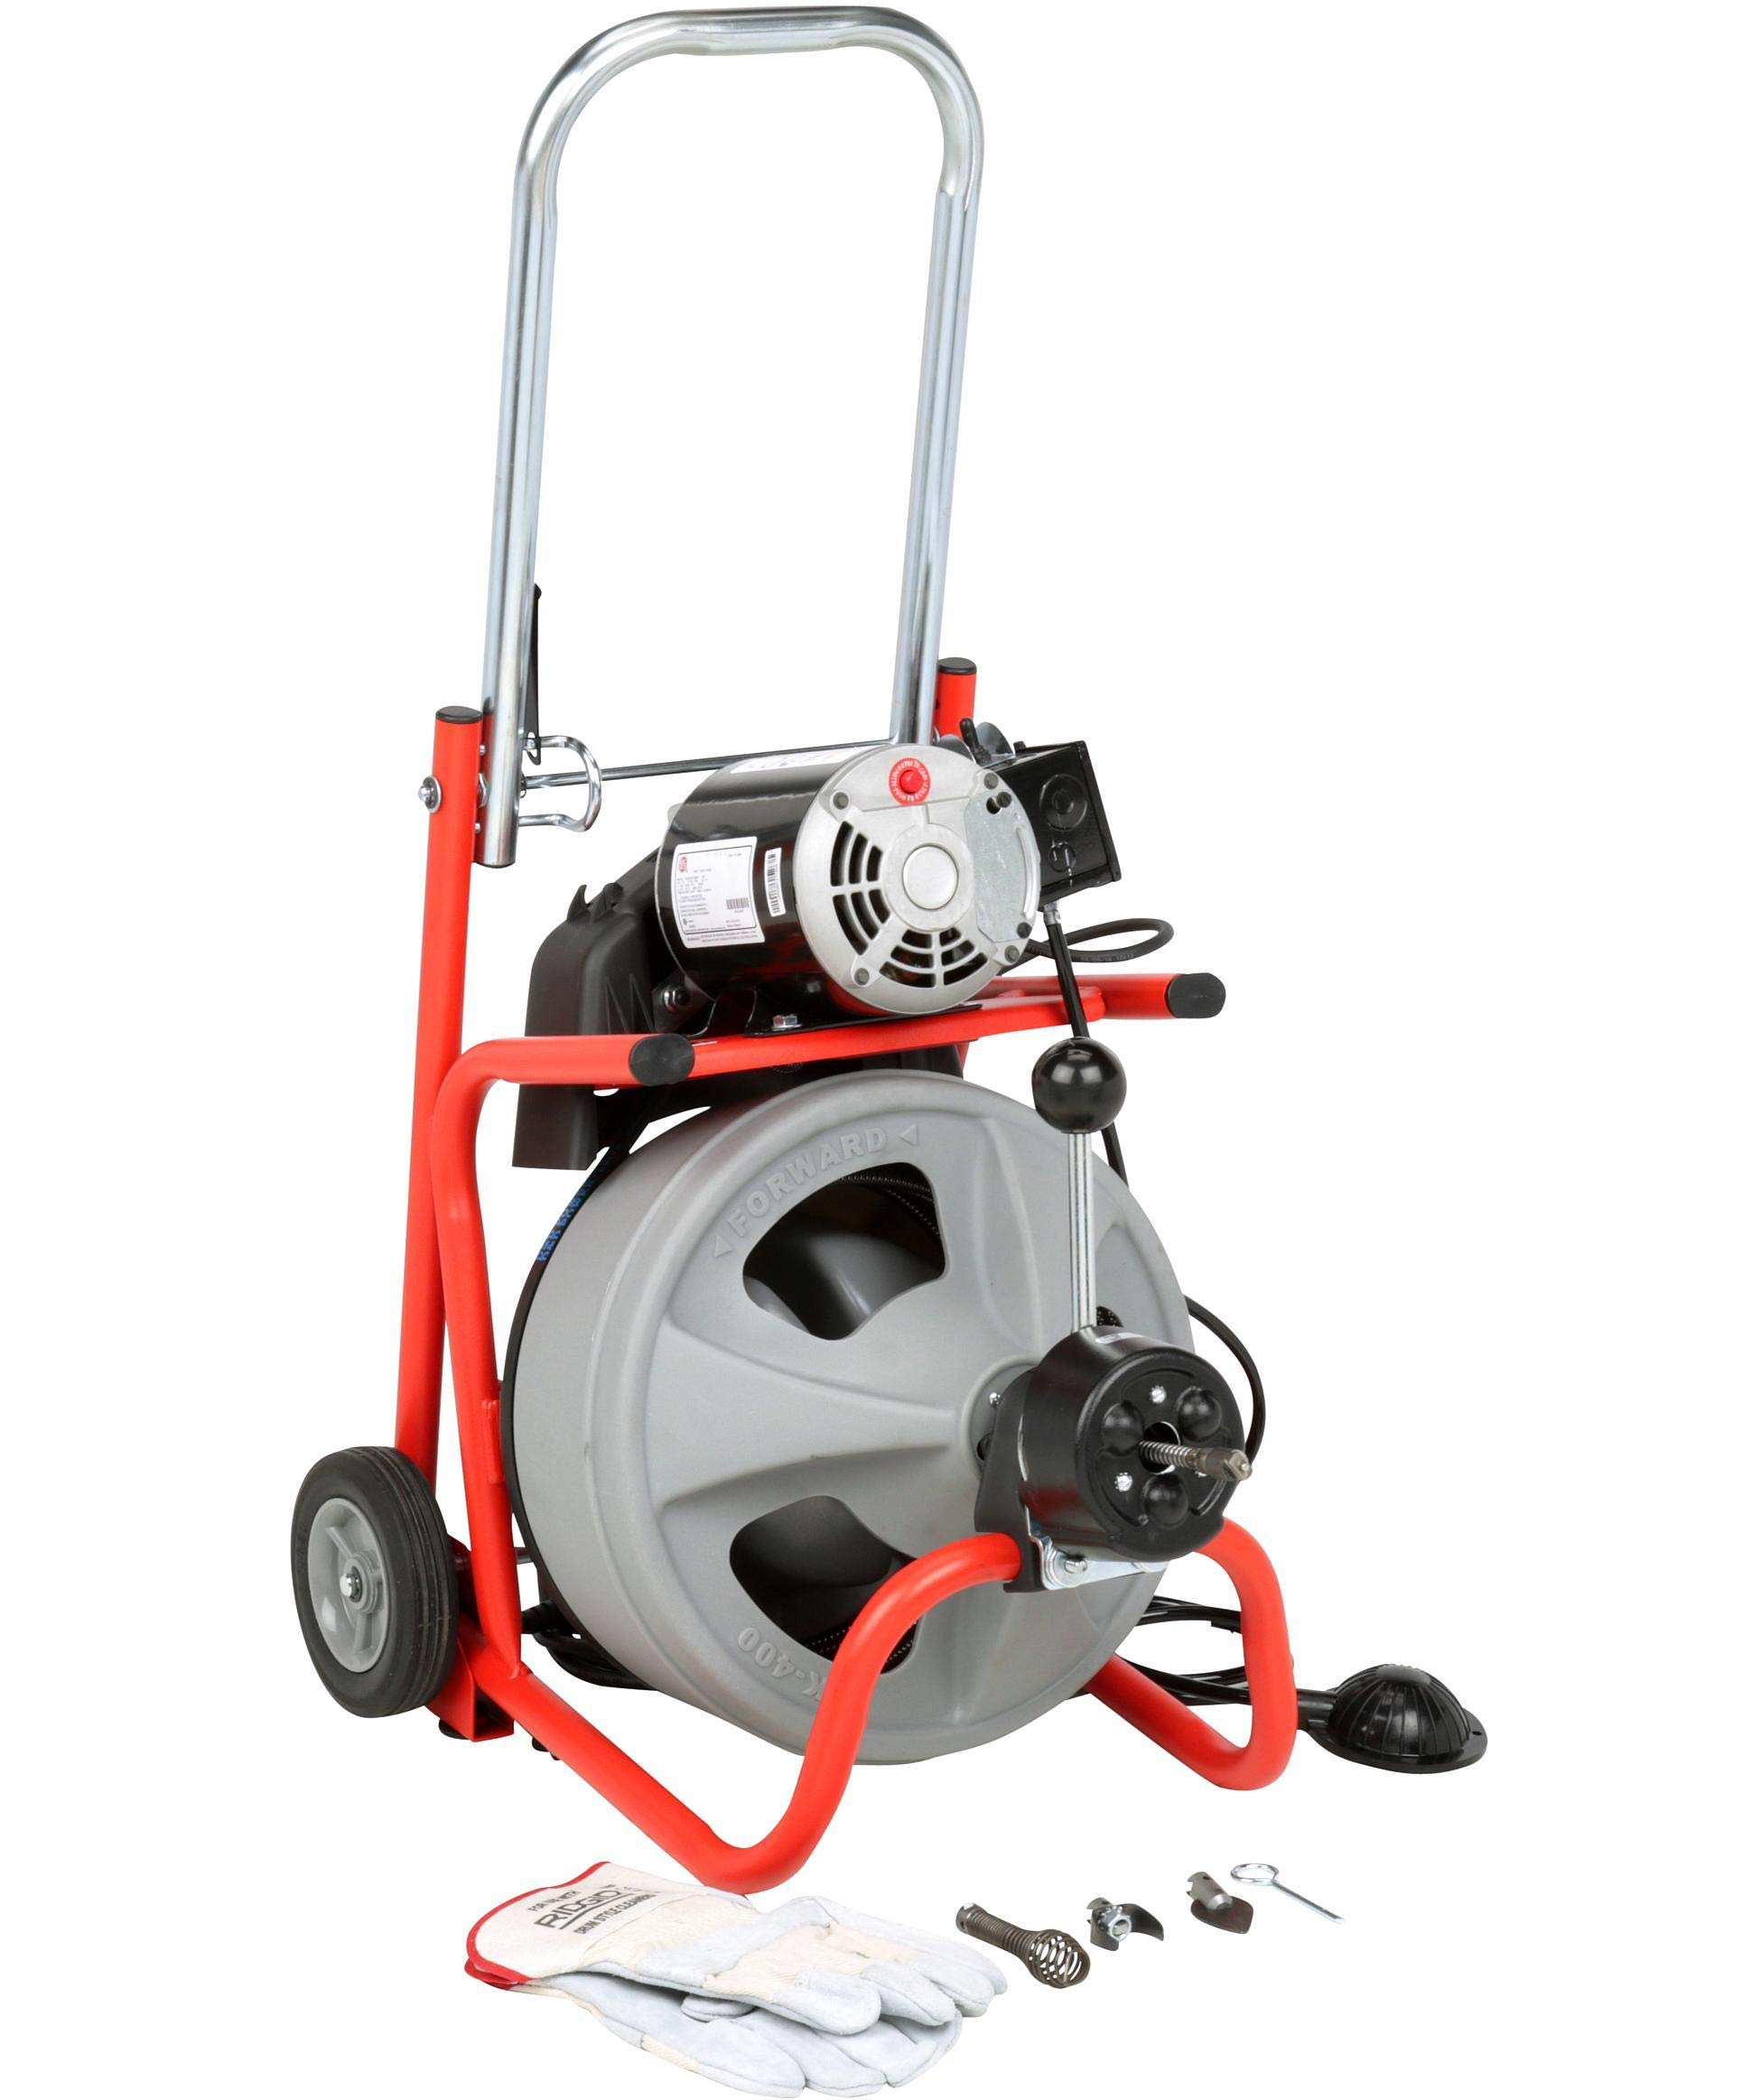 Drain Cleaning Machine, 165 rpm, 75 ft. by Ridgid